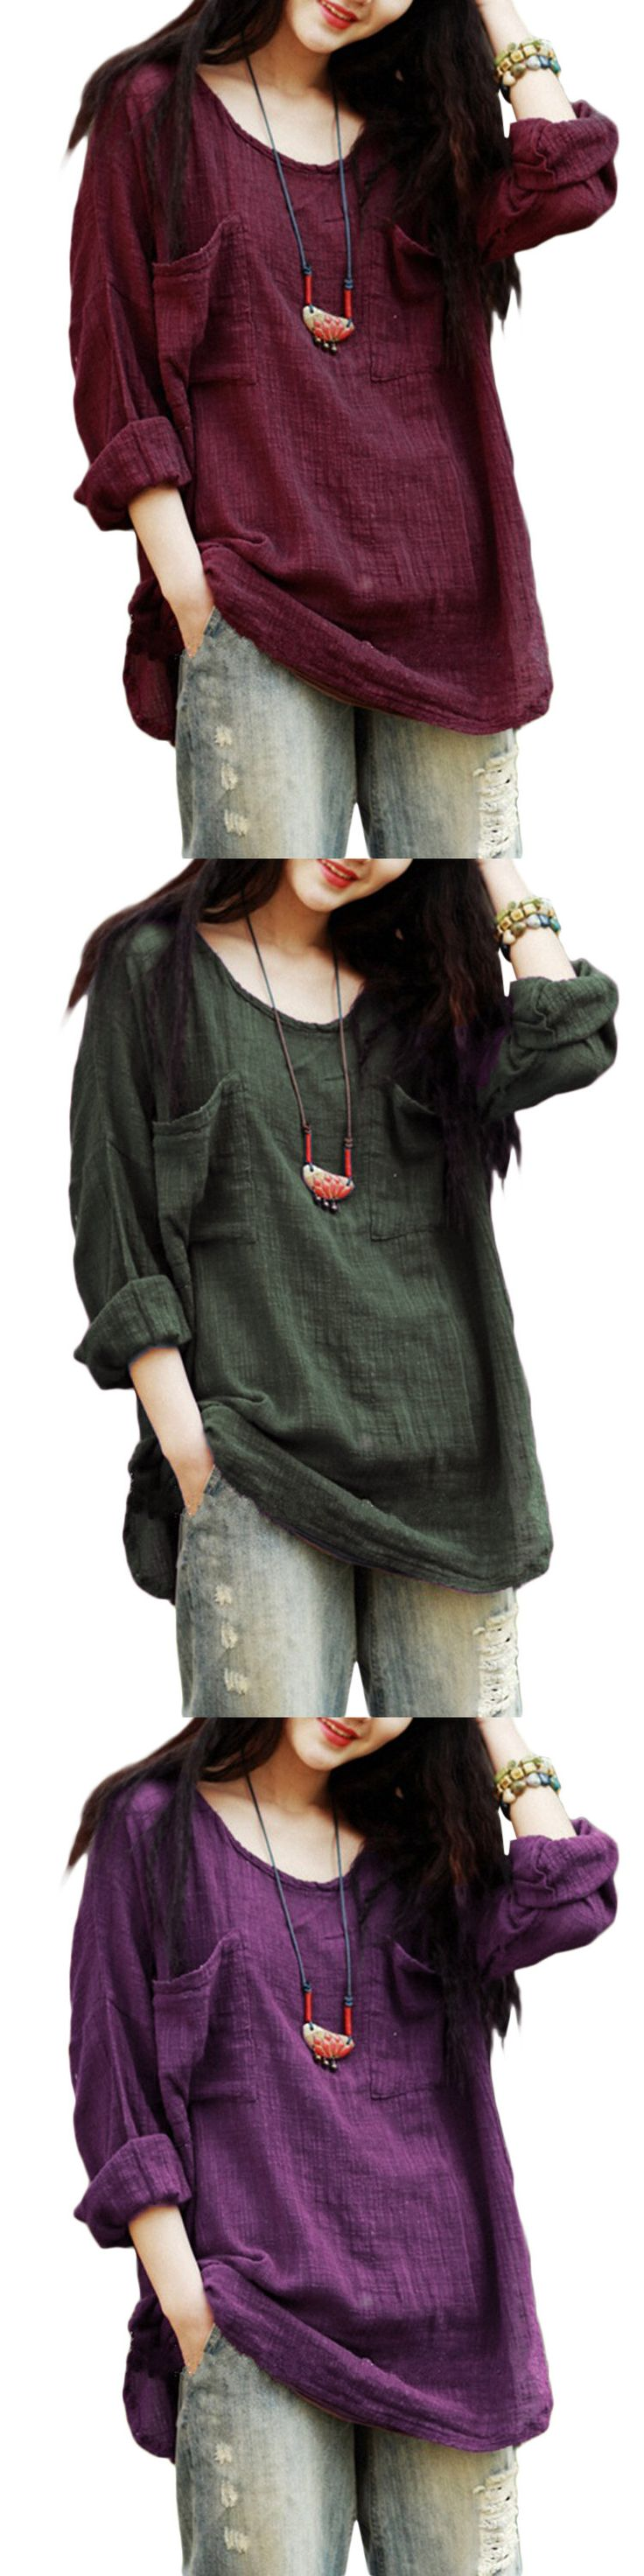 US$13.97Gracila Vintage Pure Color Long Sleeve Pockets Loose Women Shirts